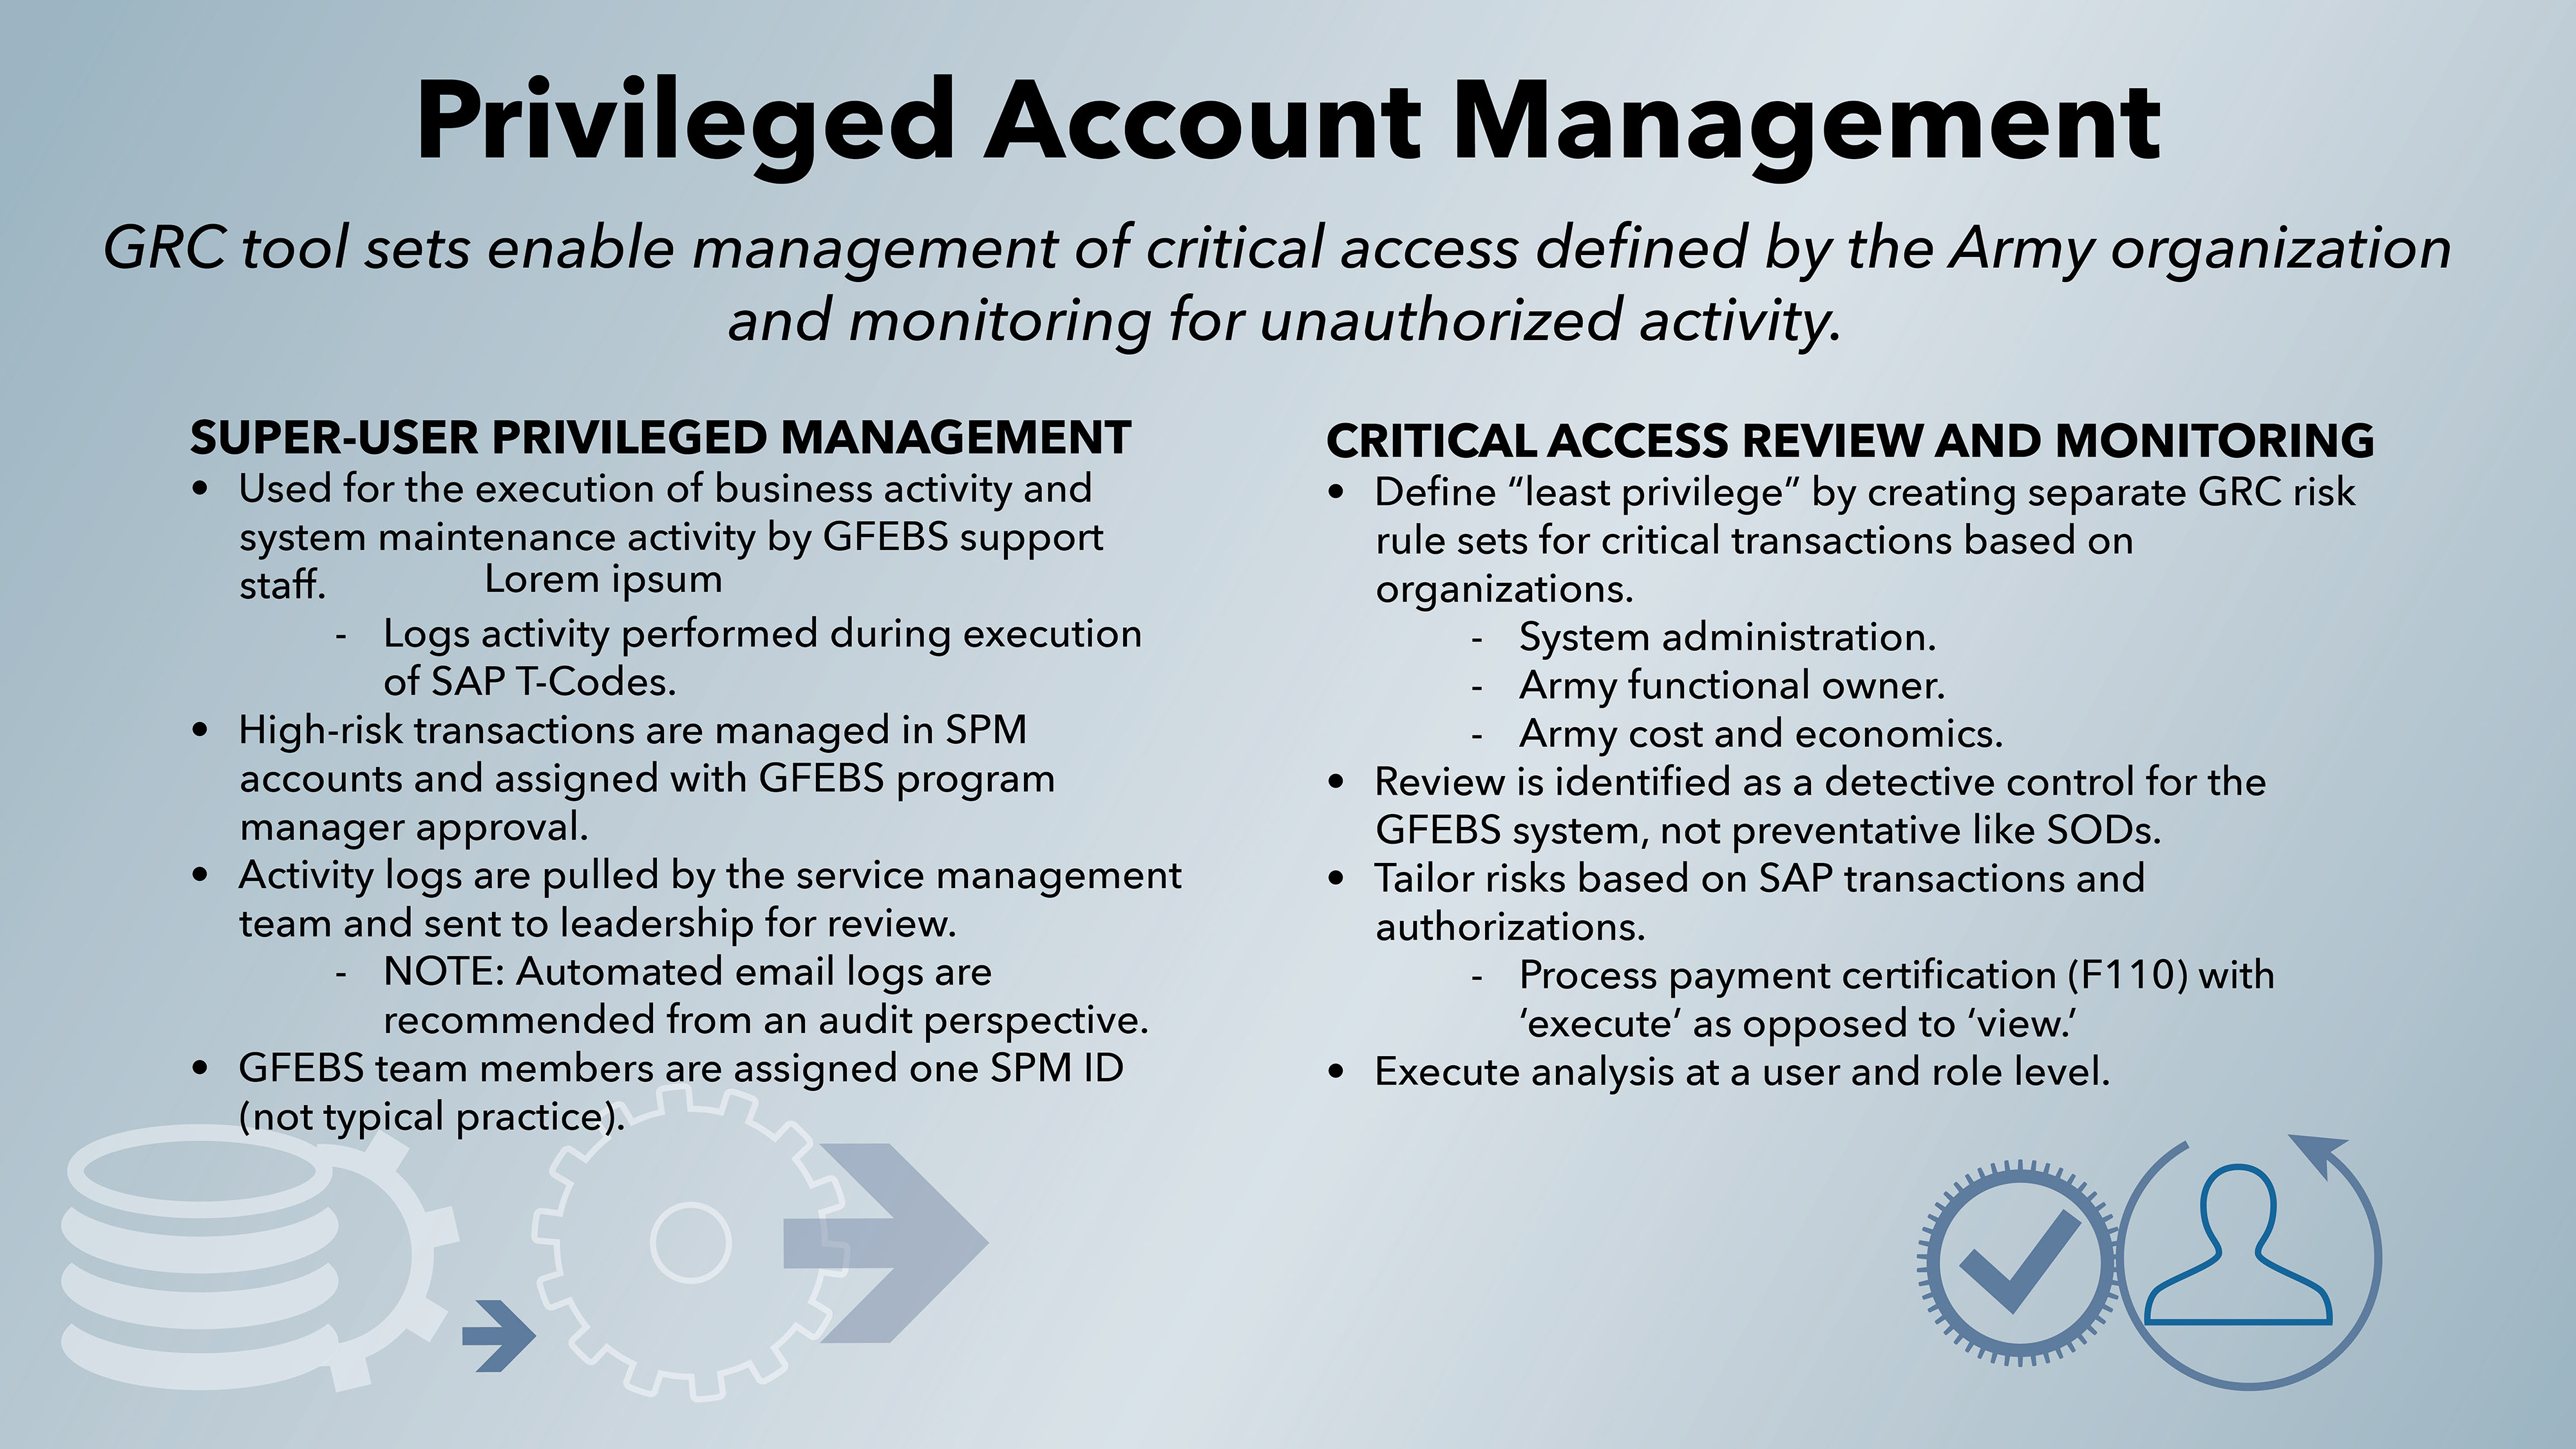 Elevated access privileges provide users with system monitoring access as well as capabilities to investigate, analyze and remedy critical and high-risk problems. Their actions are tracked, stored, monitored and reviewed, and such privileges are limited to a very small number of users in the PMO staff.